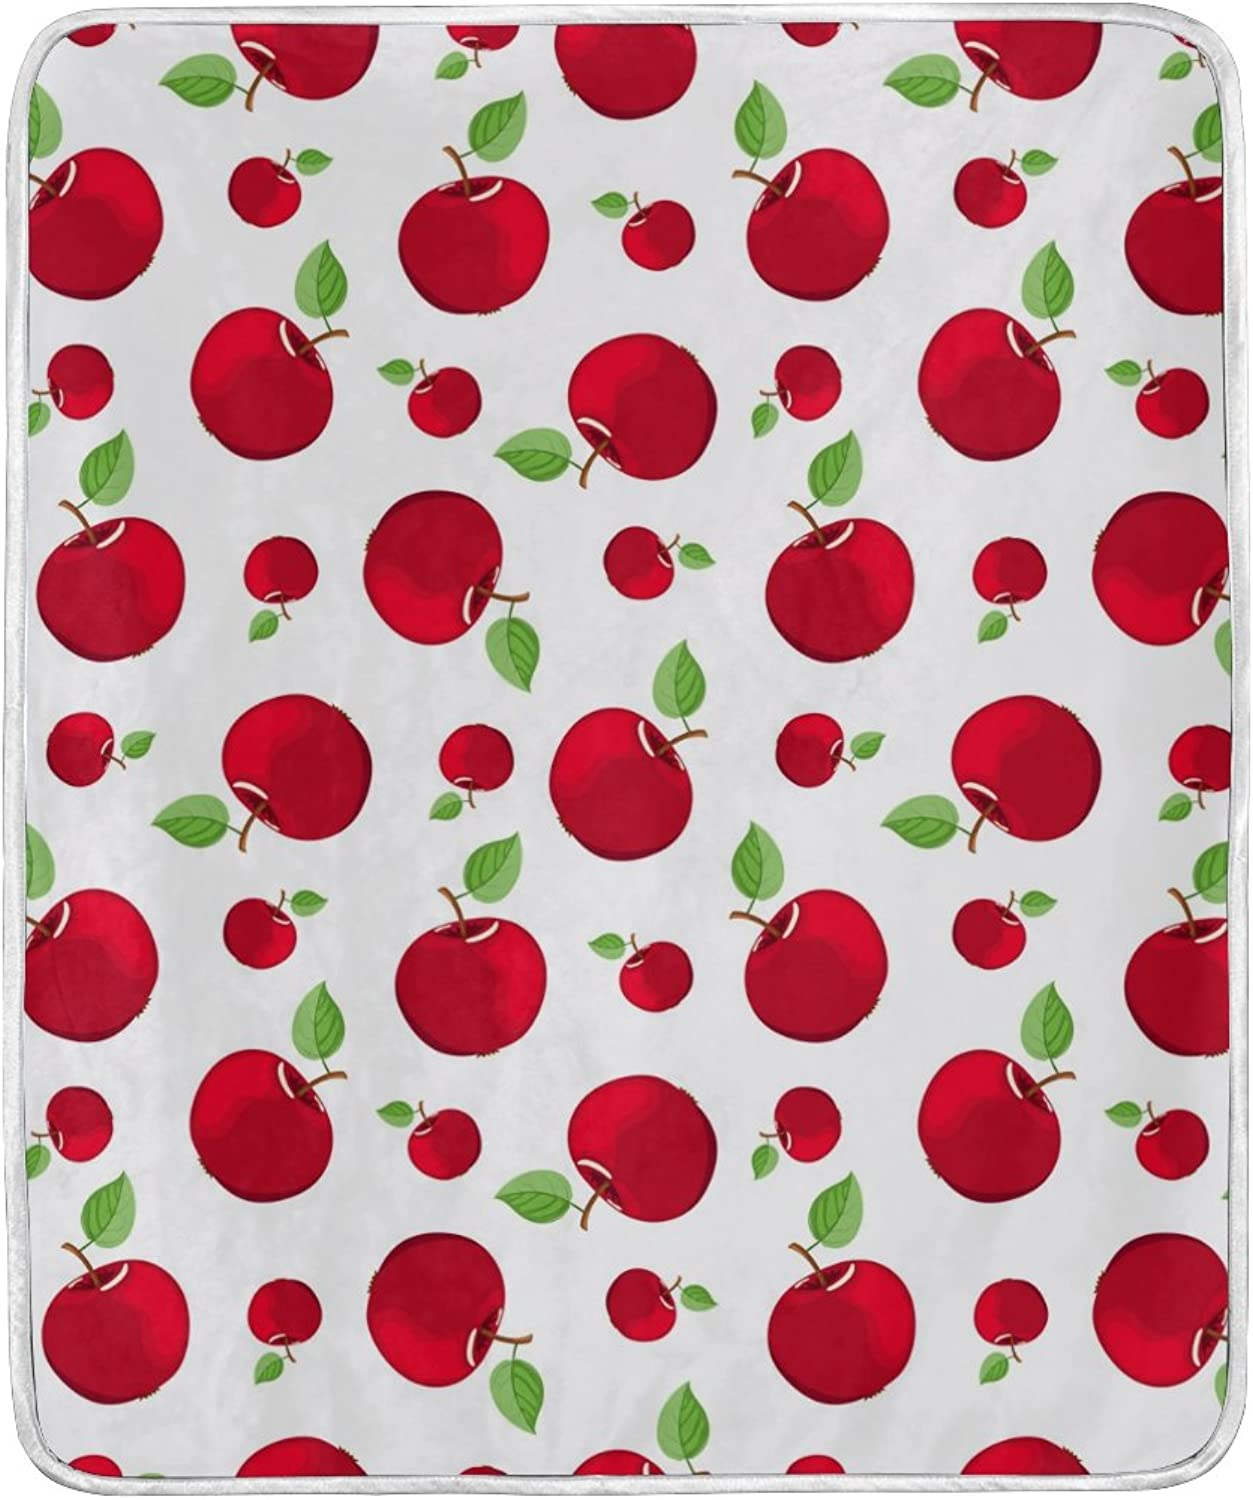 ALIREA Red Apple Pattern Super Soft Warm Blanket Lightweight Throw Blankets for Bed Couch Sofa Travelling Camping 60 x 50 Inch for Kids Boys Girls